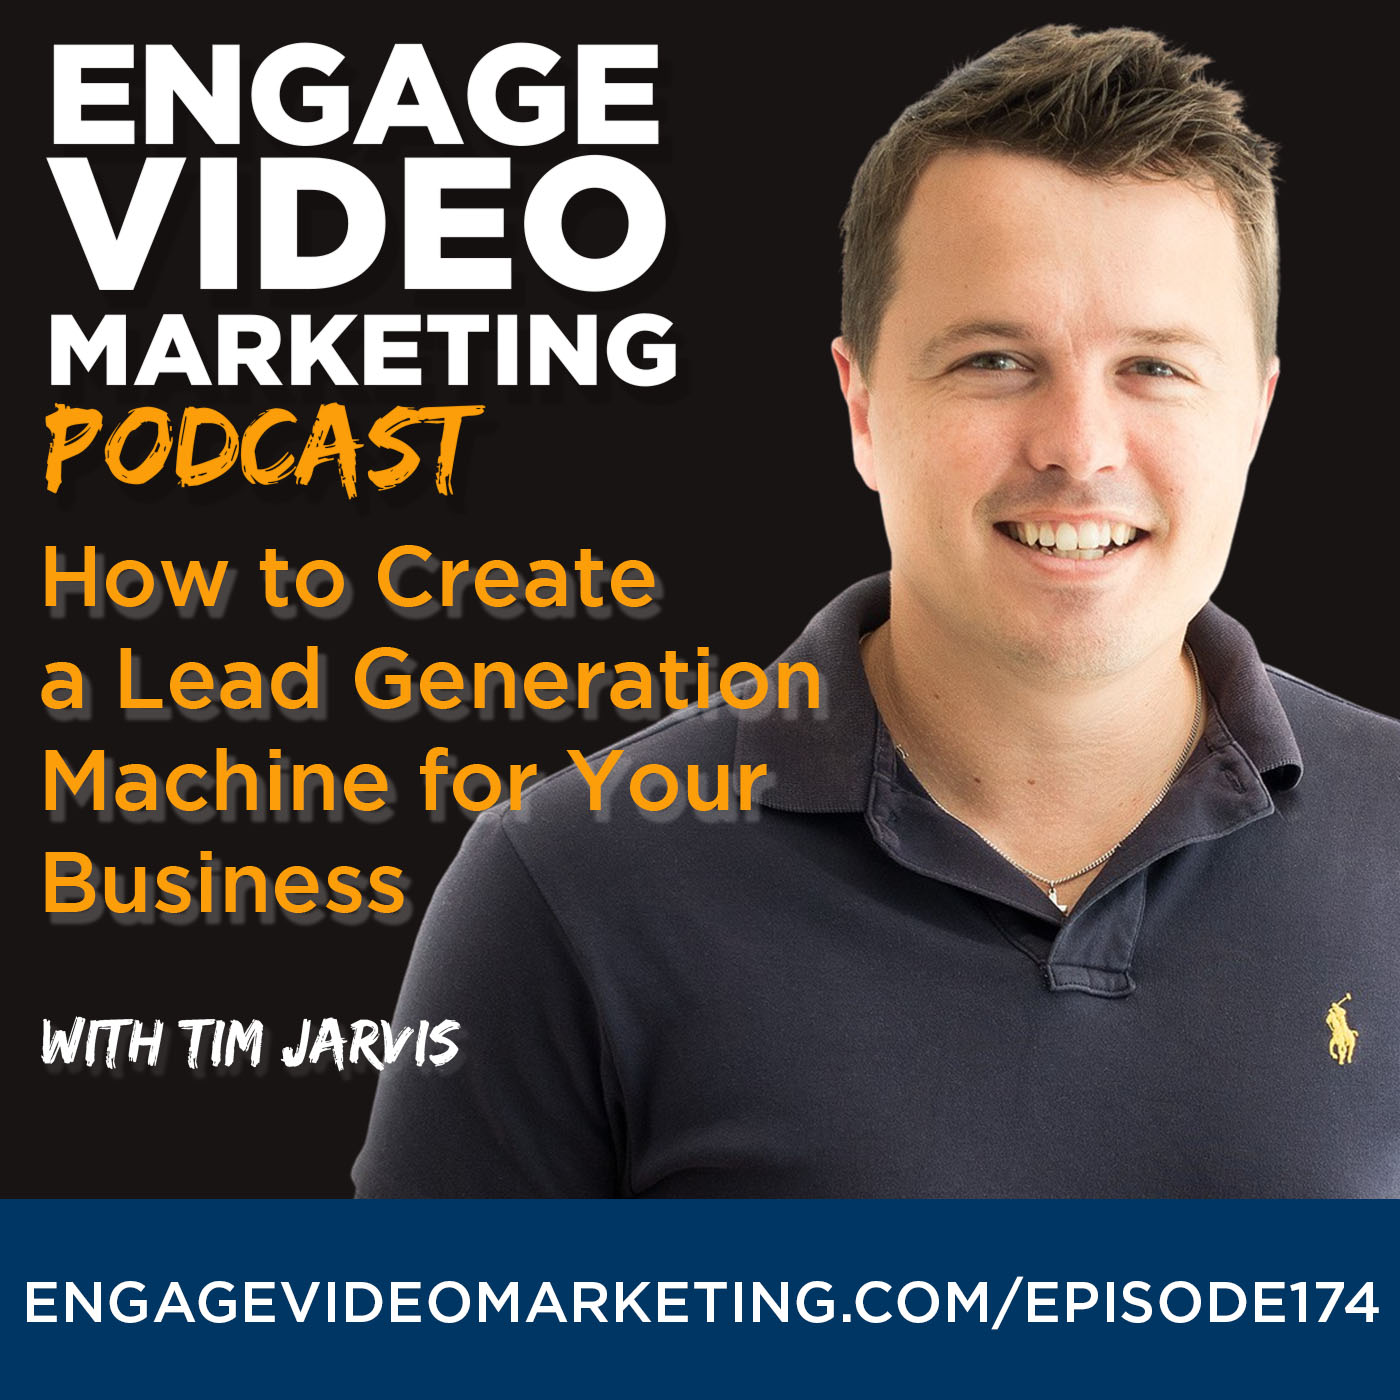 How to Create a Lead Generation Machine for Your Business with Tim Jarvis